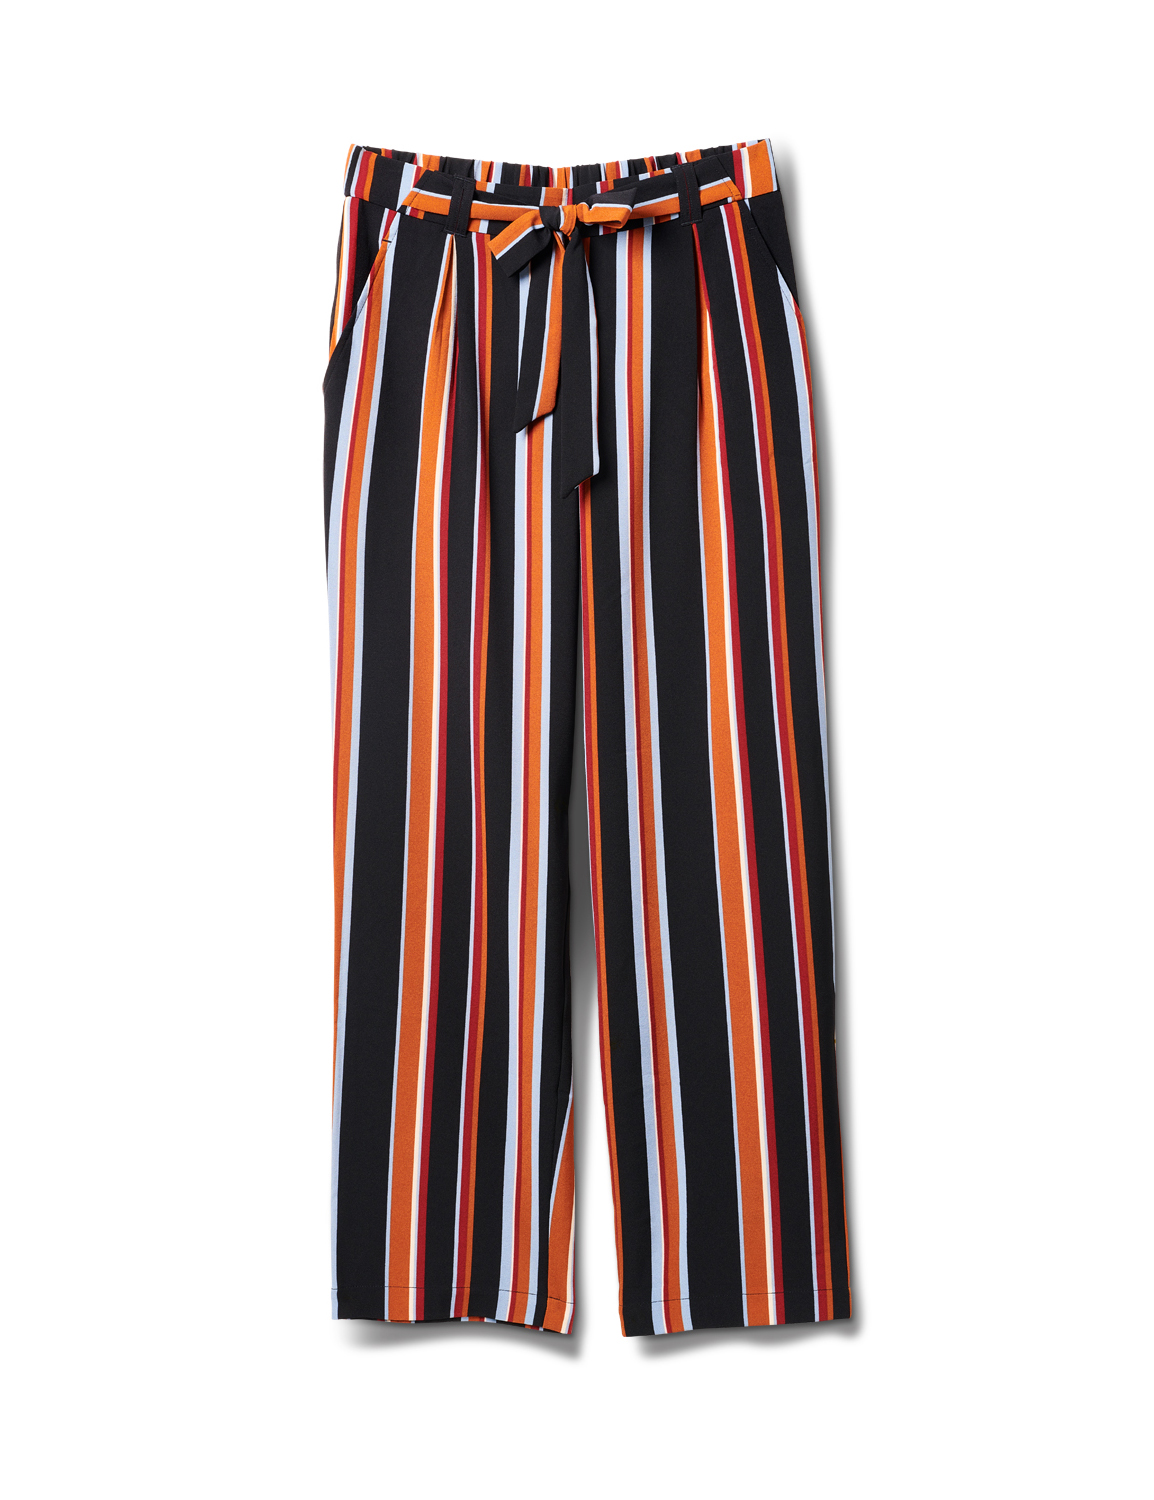 Striped Elastic Waist Soft Pant with Tie Belt -Multi - Front